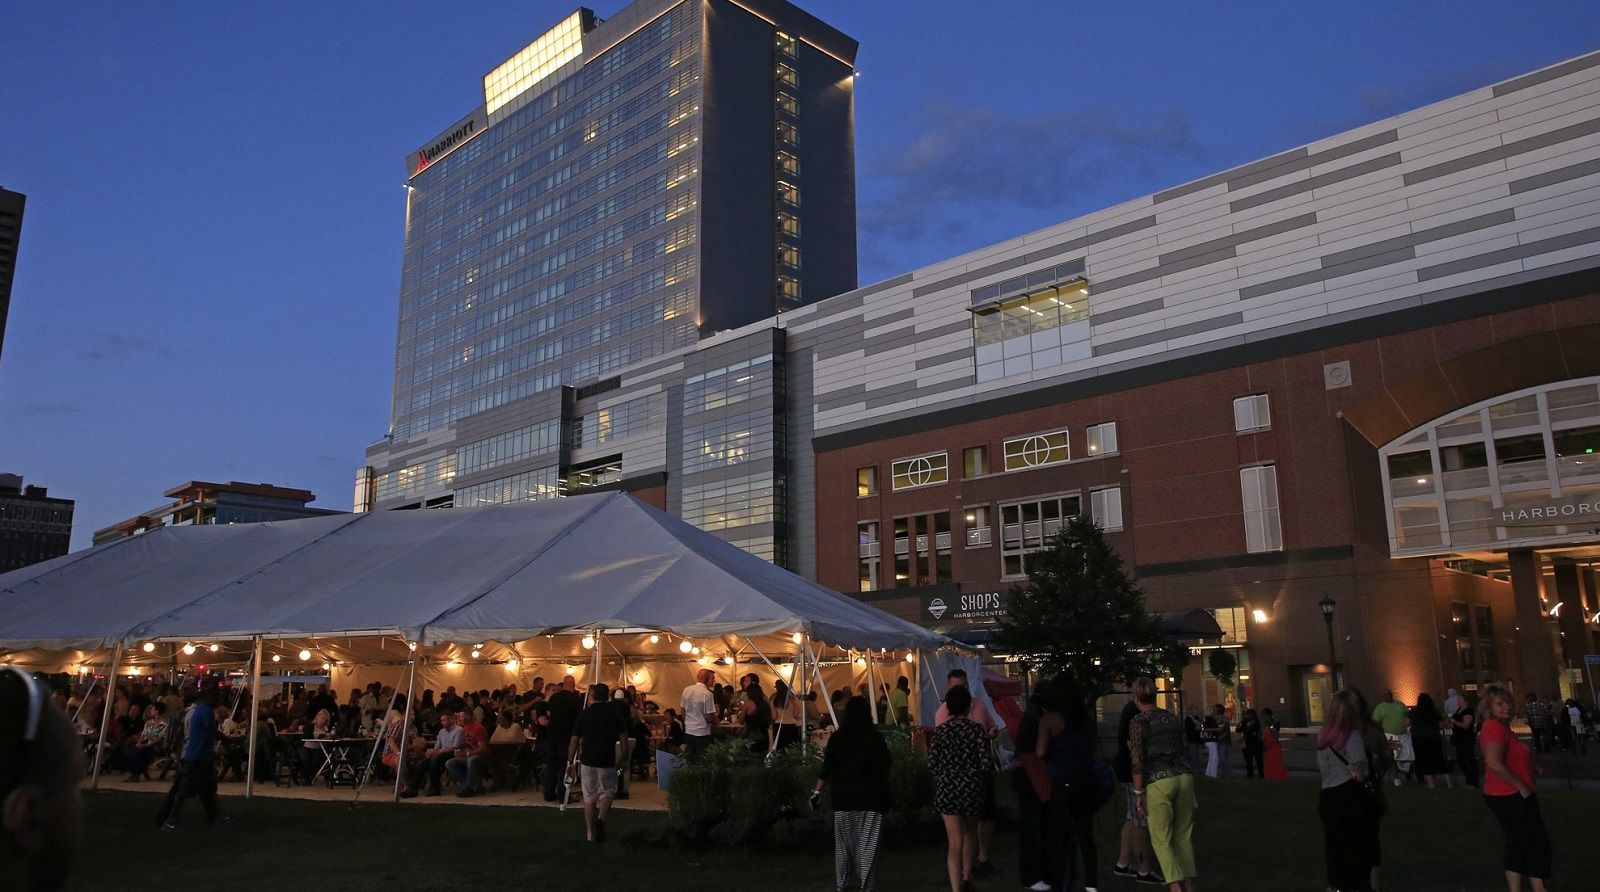 The VIP tent at Canalside on Thursday, Aug. 20, 2015, before the En Vogue show. Tonight, Michael Farrell will live-tweet the VIP experience.  (Harry Scull Jr./Buffalo News file photo)